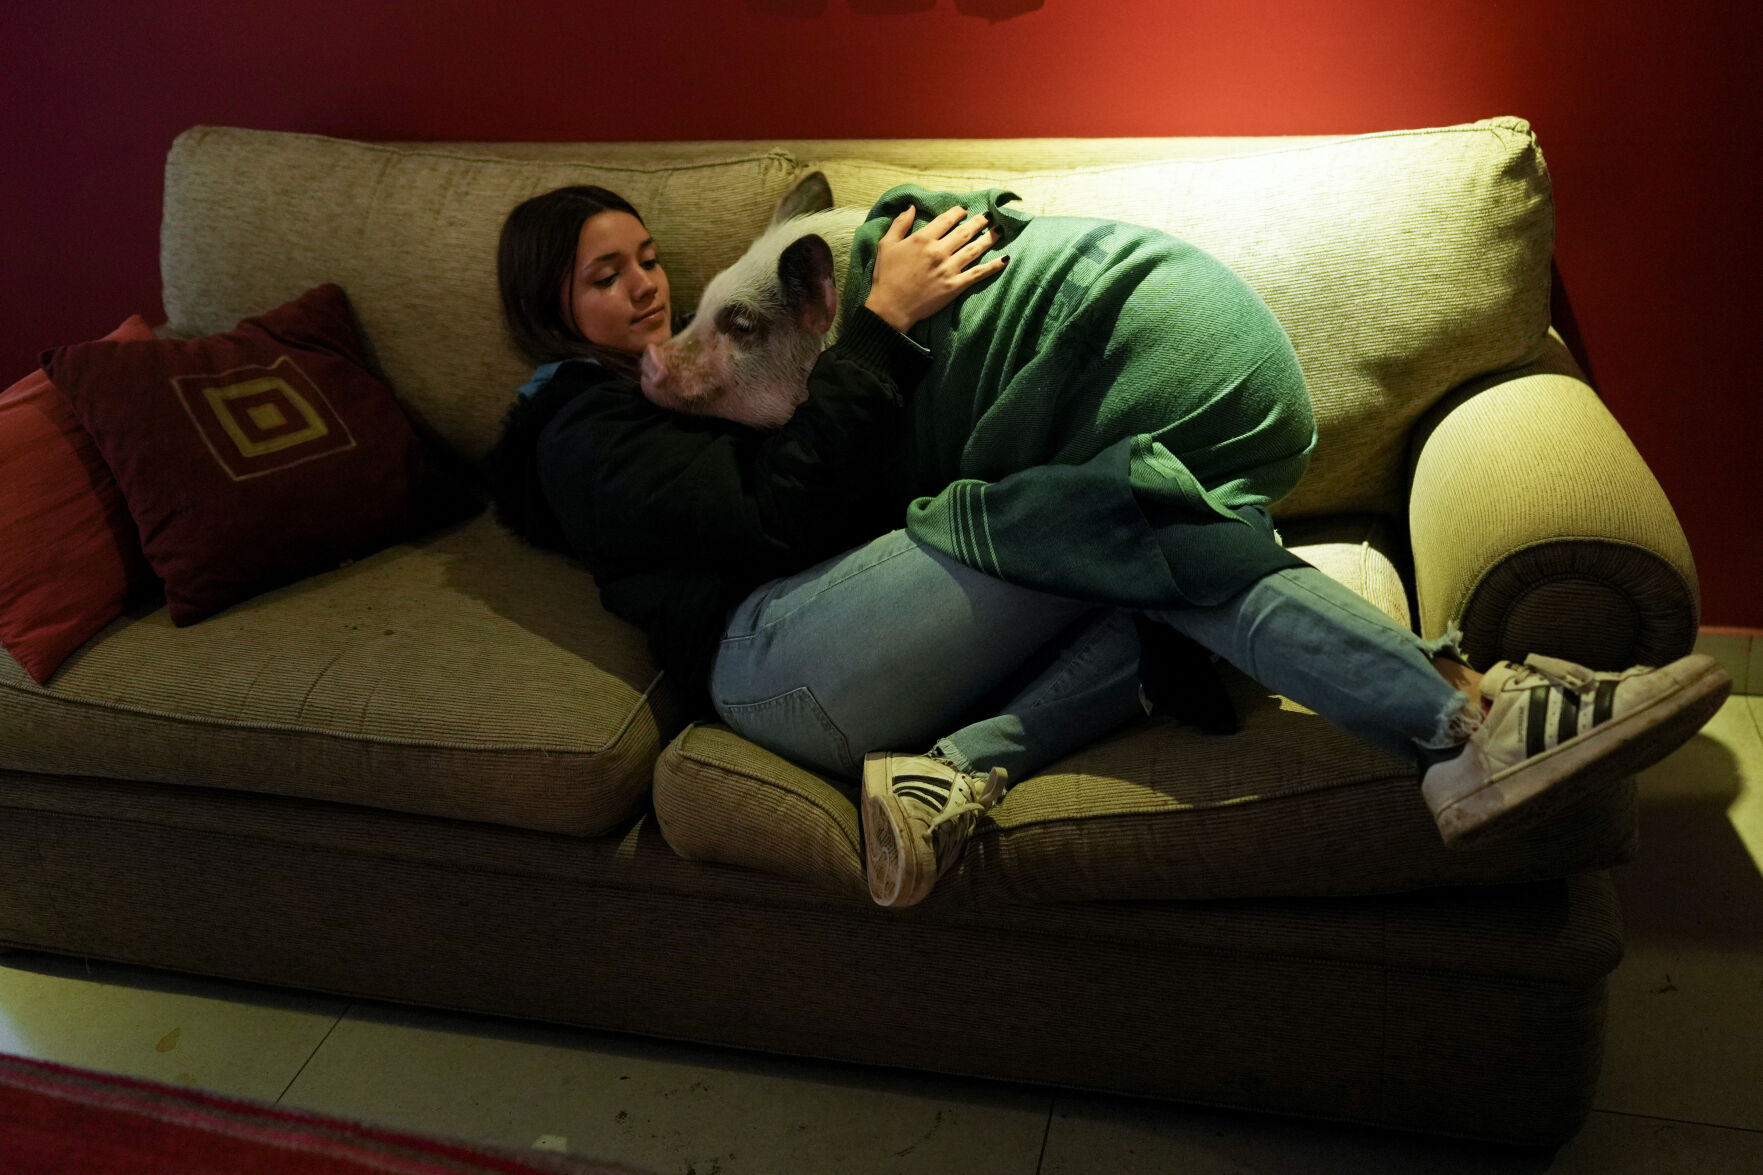 <p>Luciana Benetti, 16, embraces her pet pig Chanchi at home in Buenos Aires, Argentina, Saturday, Sept. 4, 2021. Benetti found her plans for a big traditional 15th birthday party scrapped due to the COVID-19 pandemic last year. In its place, her parents gave her a pig, which turned out to be a loyal and loving companion. (AP Photo/Natacha Pisarenko)</p>